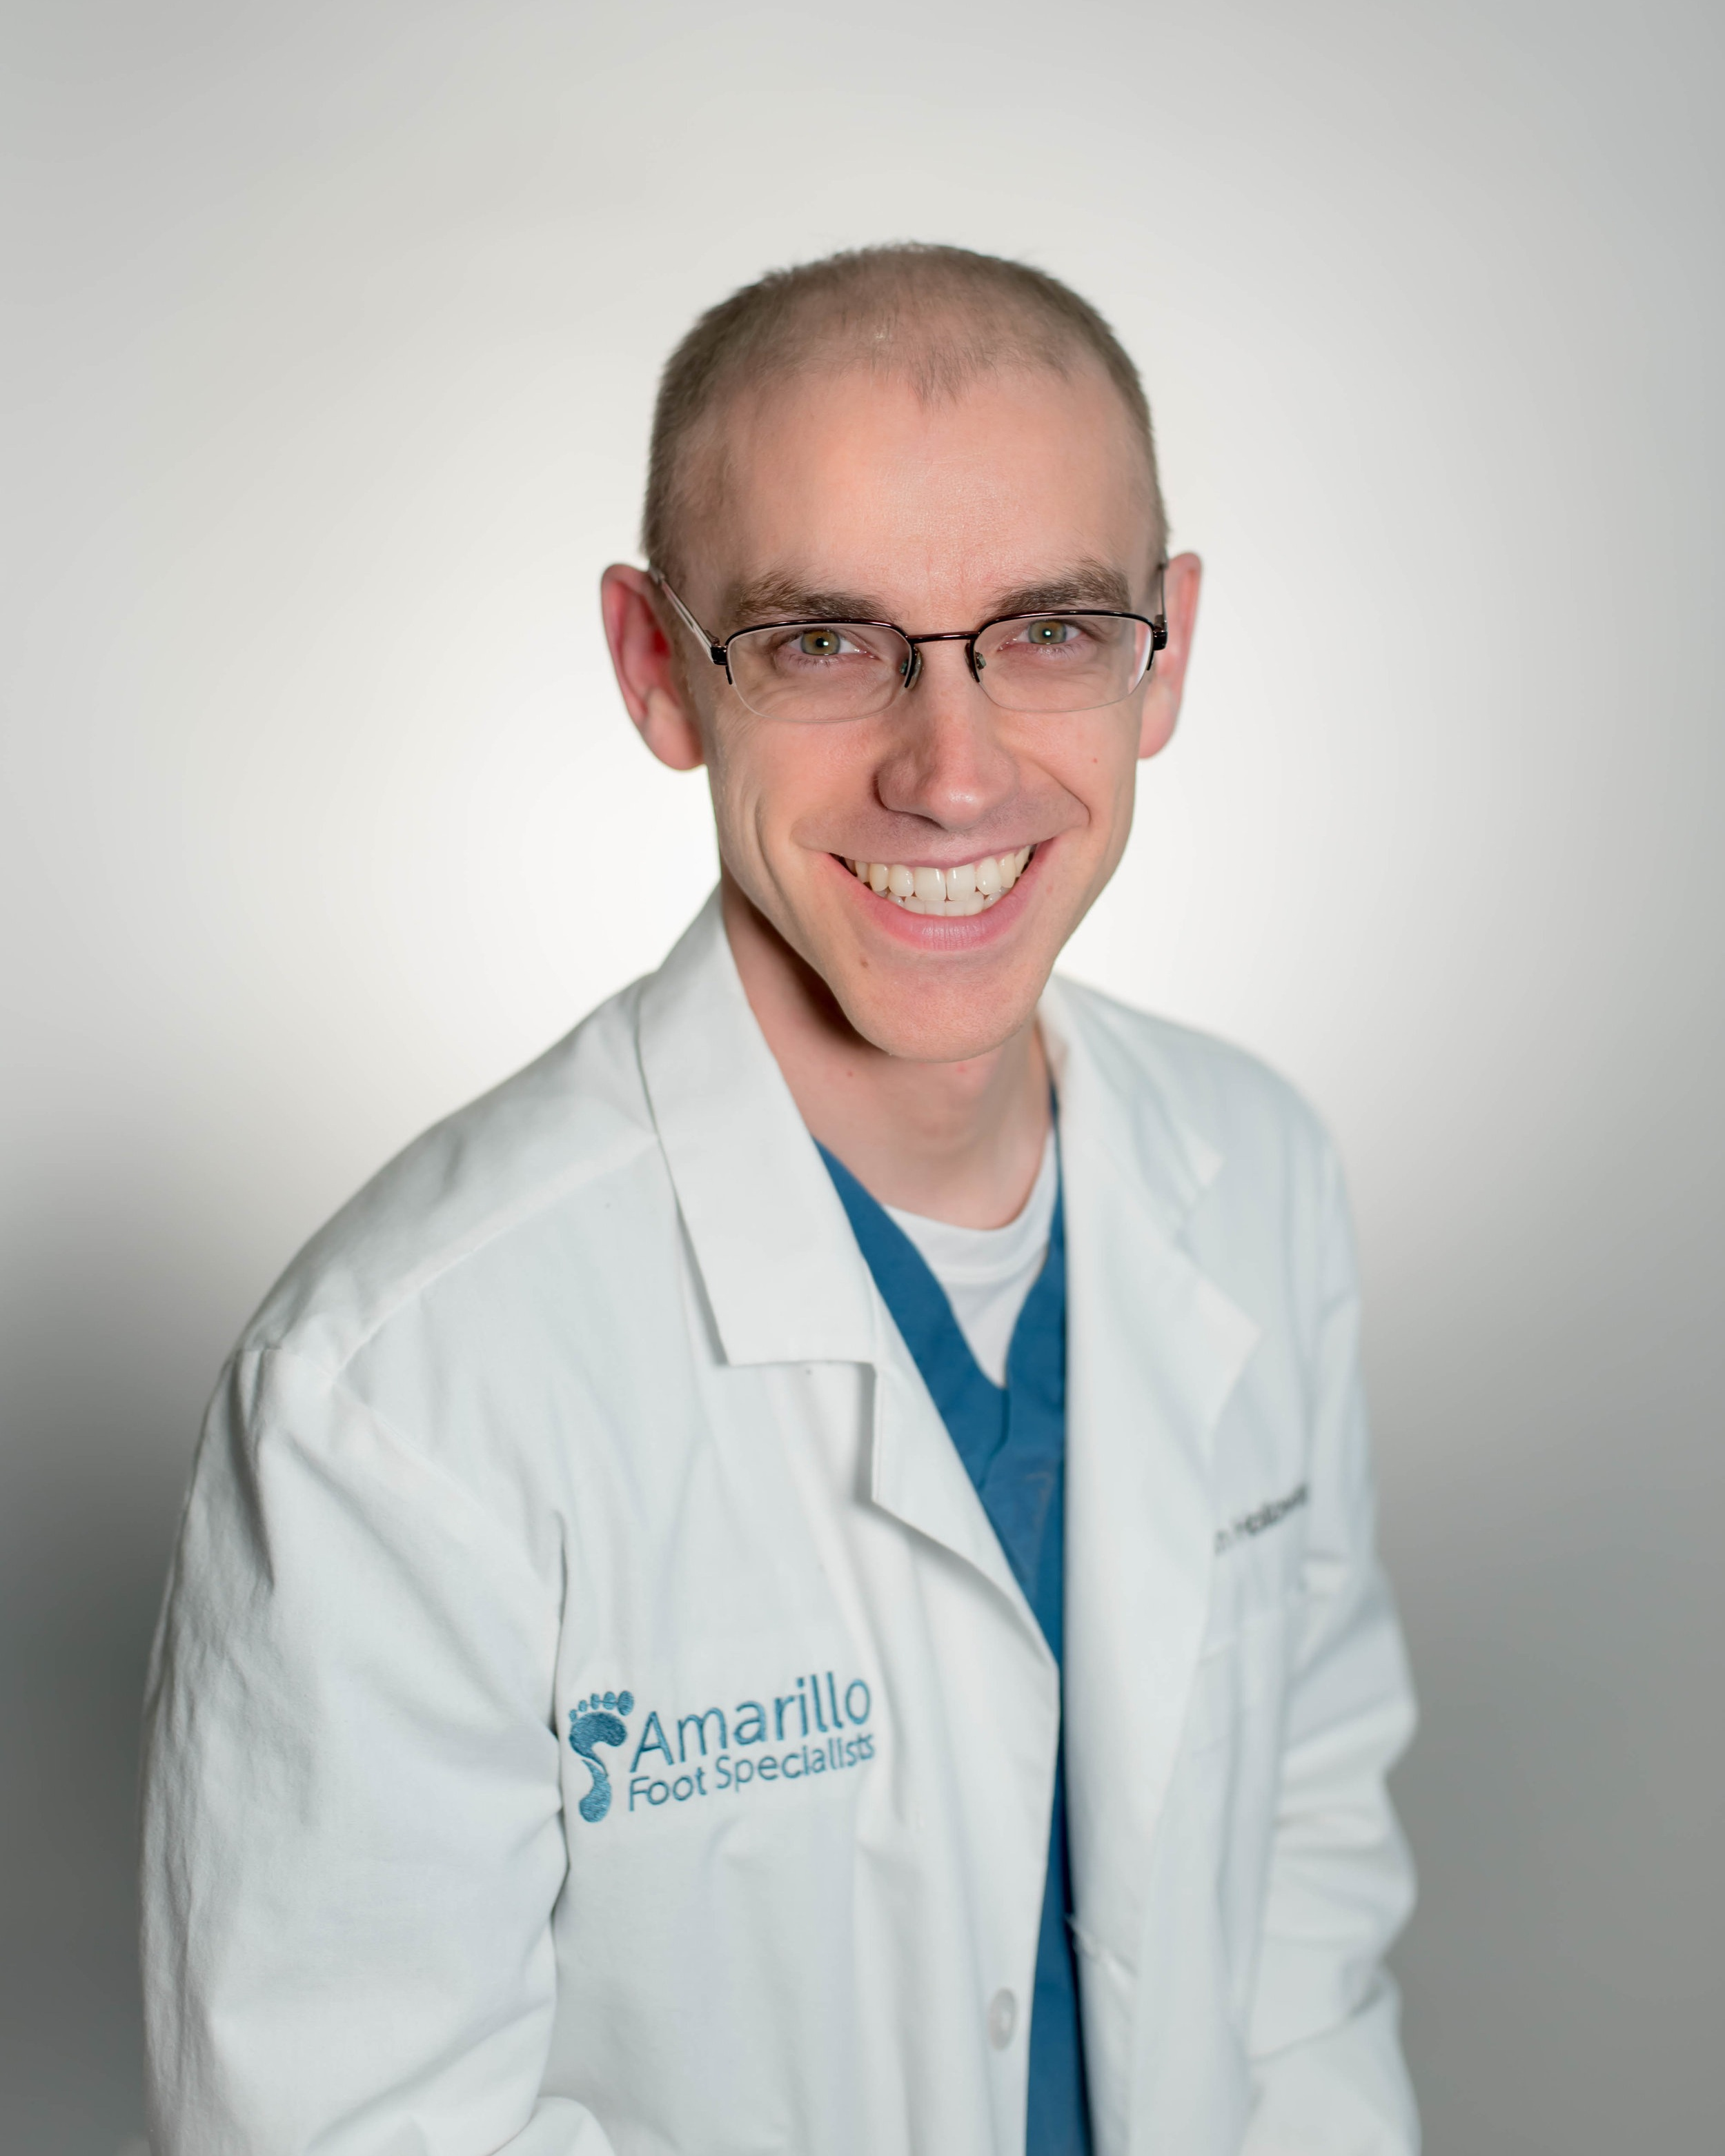 Dr. Travis Holloway - Dr. Travis Holloway graduated from Kent State University College of Podiatric Medicine in 2013. Following medical school, Travis then completed 3 years of comprehensive surgical training as a resident in Youngstown, Ohio.About Dr. Travis Holloway →